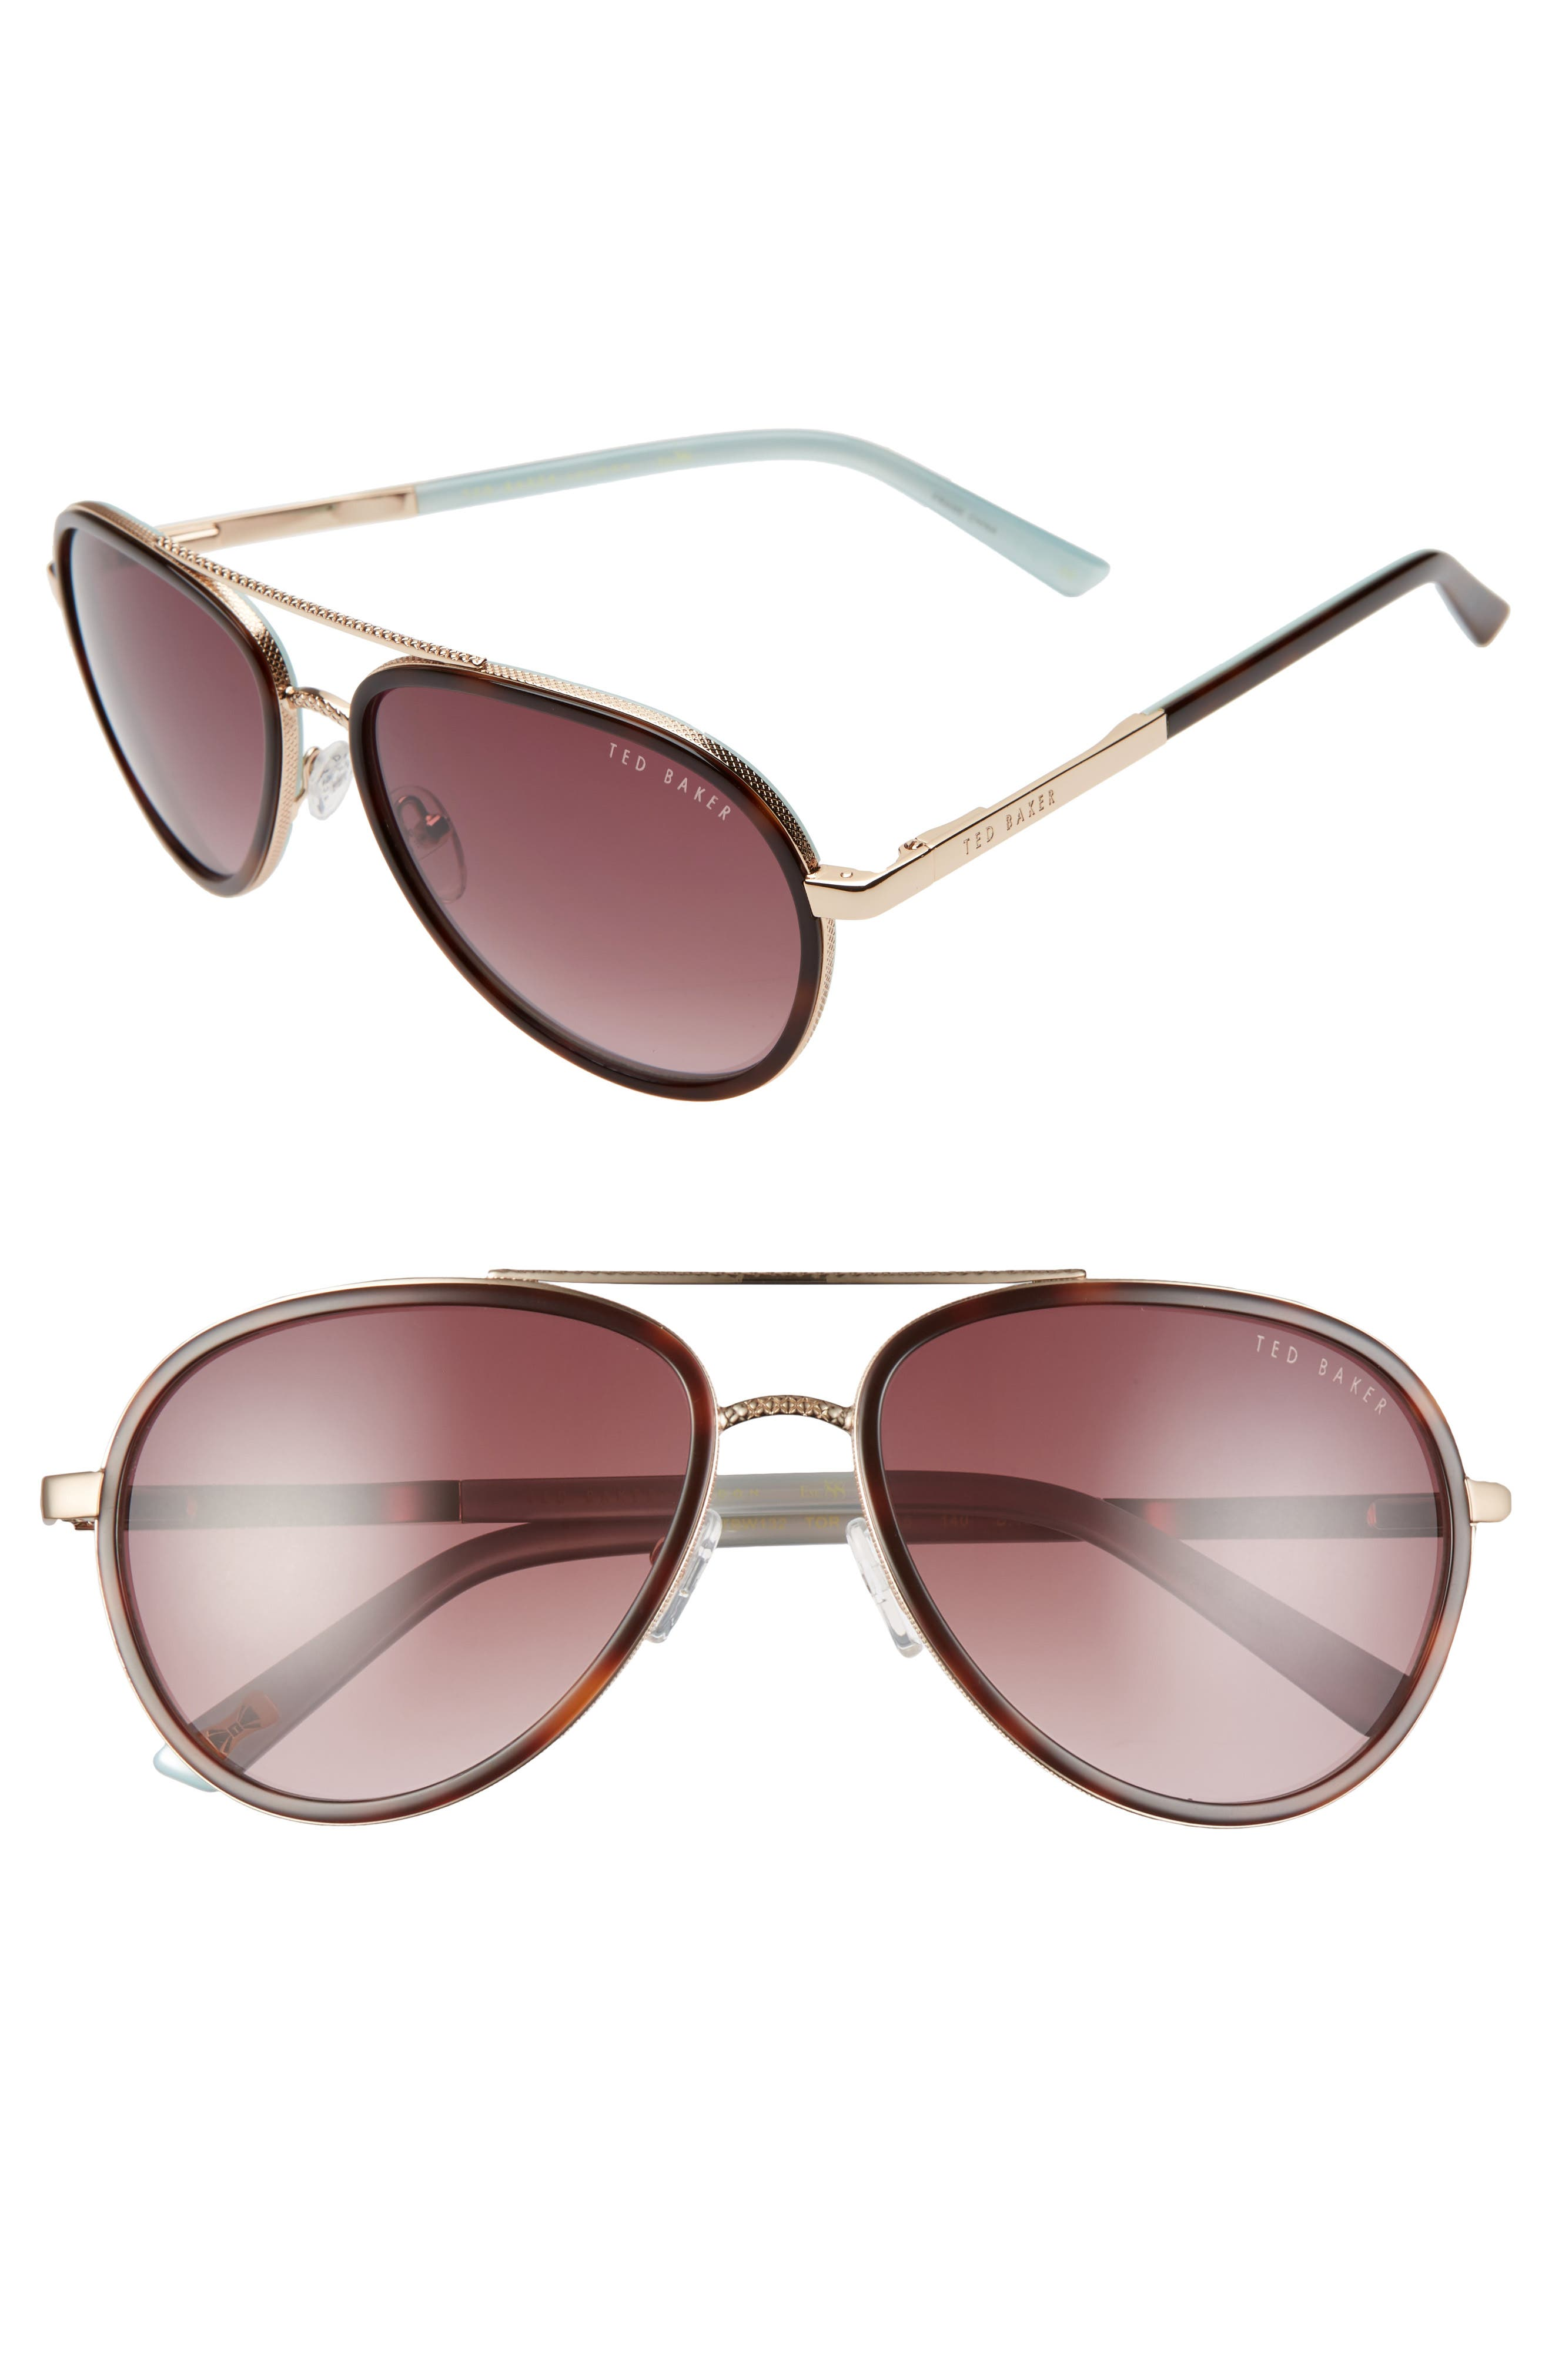 Textured metal frames add interest to double-bridge aviator sunglasses with a classic teardrop silhouette. Style Name: Ted Baker London 58mm Aviator Sunglasses. Style Number: 5987441. Available in stores.